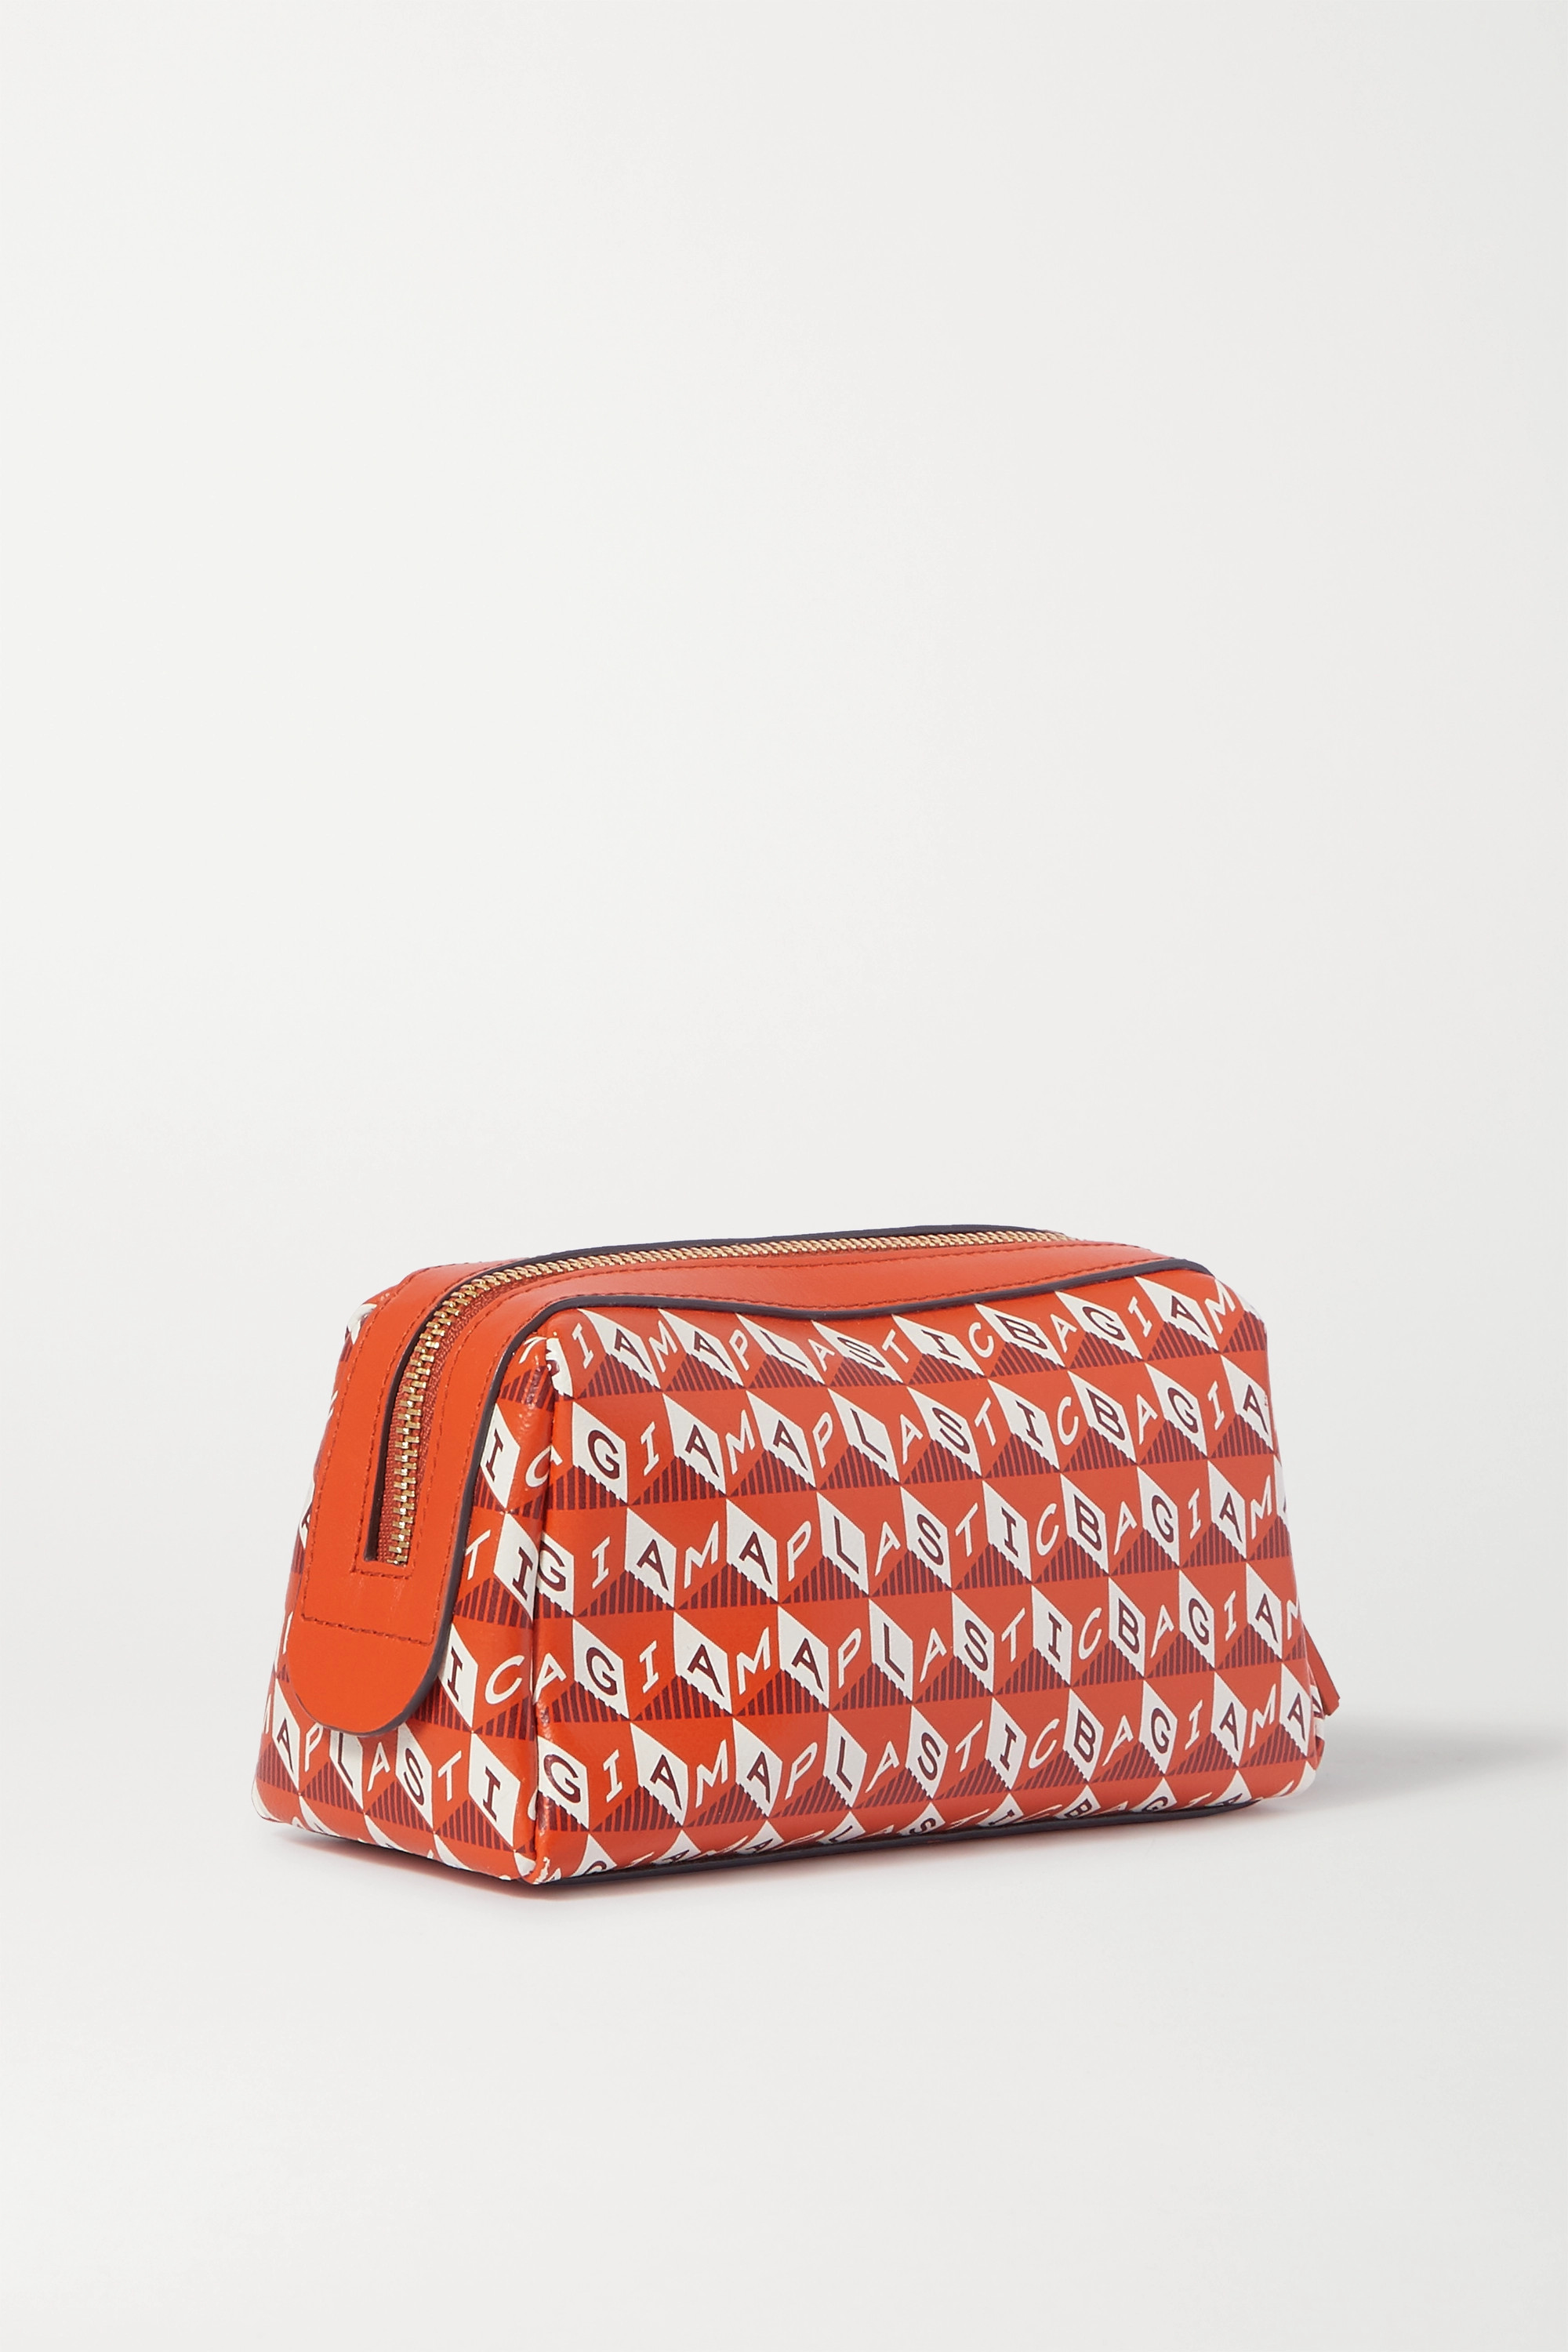 Anya Hindmarch Girlie Stuff leather-trimmed printed coated-canvas cosmetics case